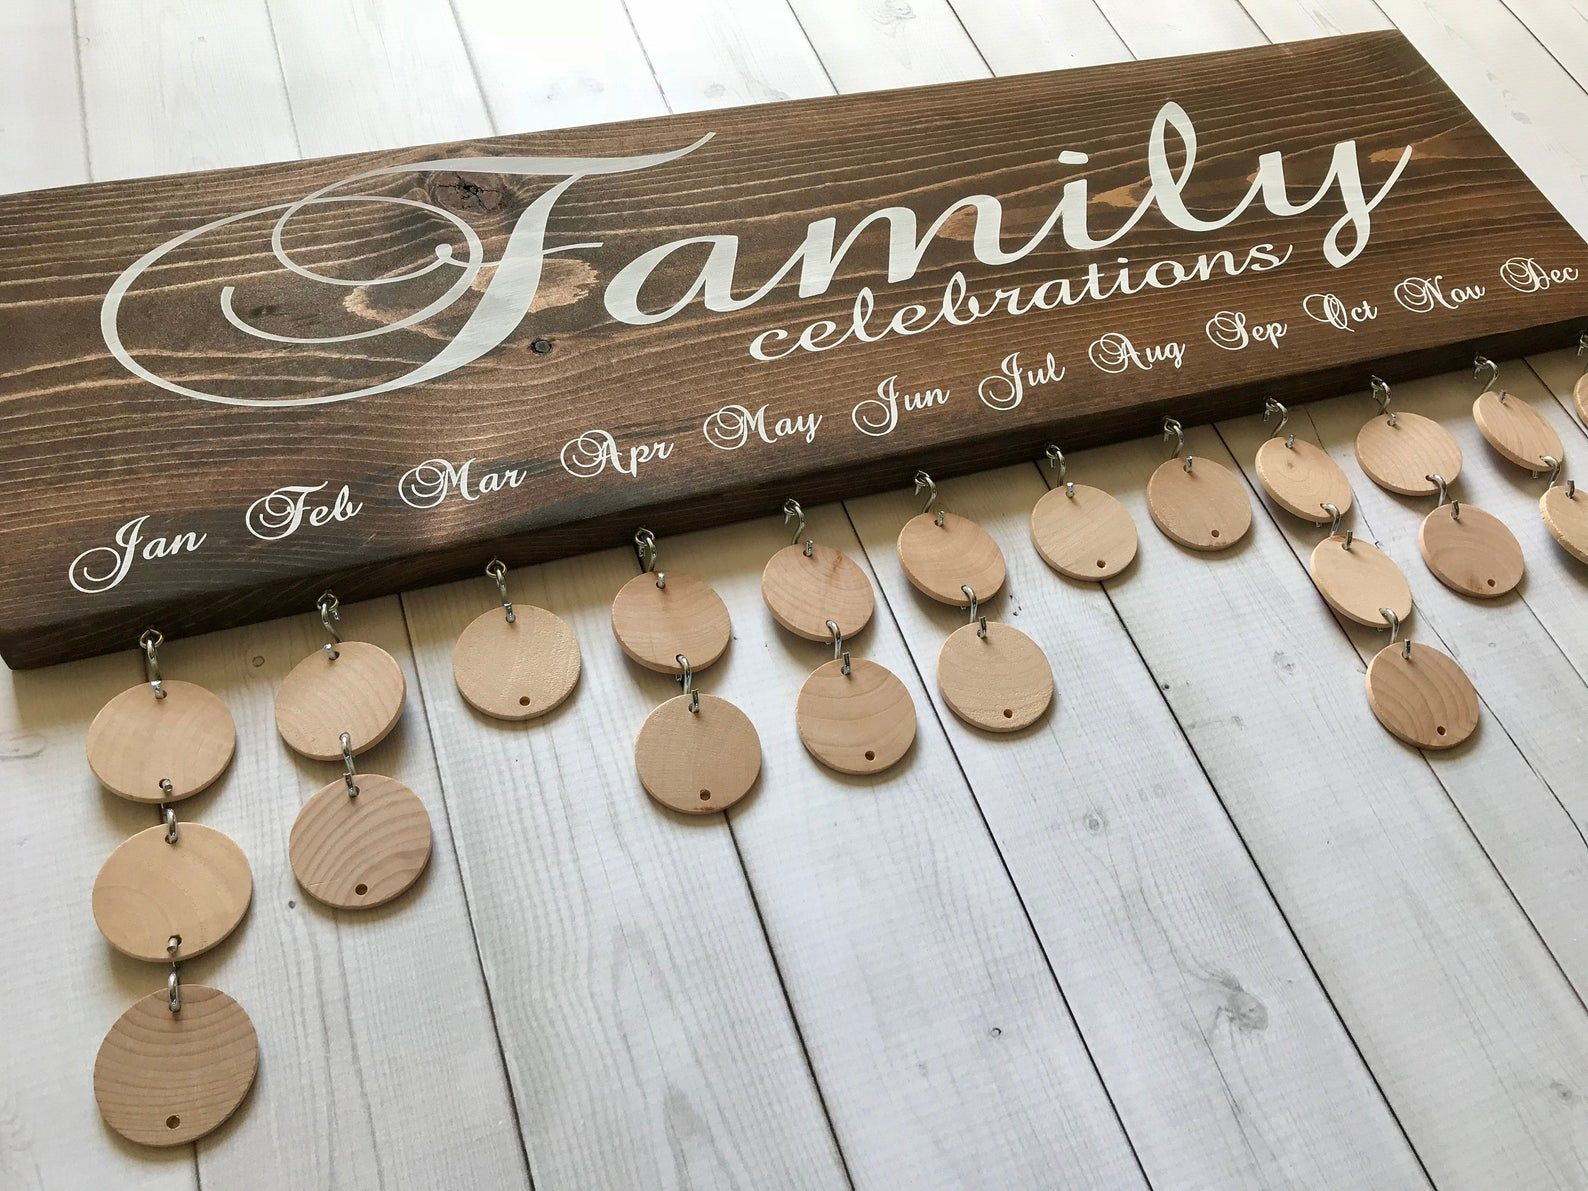 25 Great Gifts For Grandparents Present Ideas For Grandma And Grandpa 2020